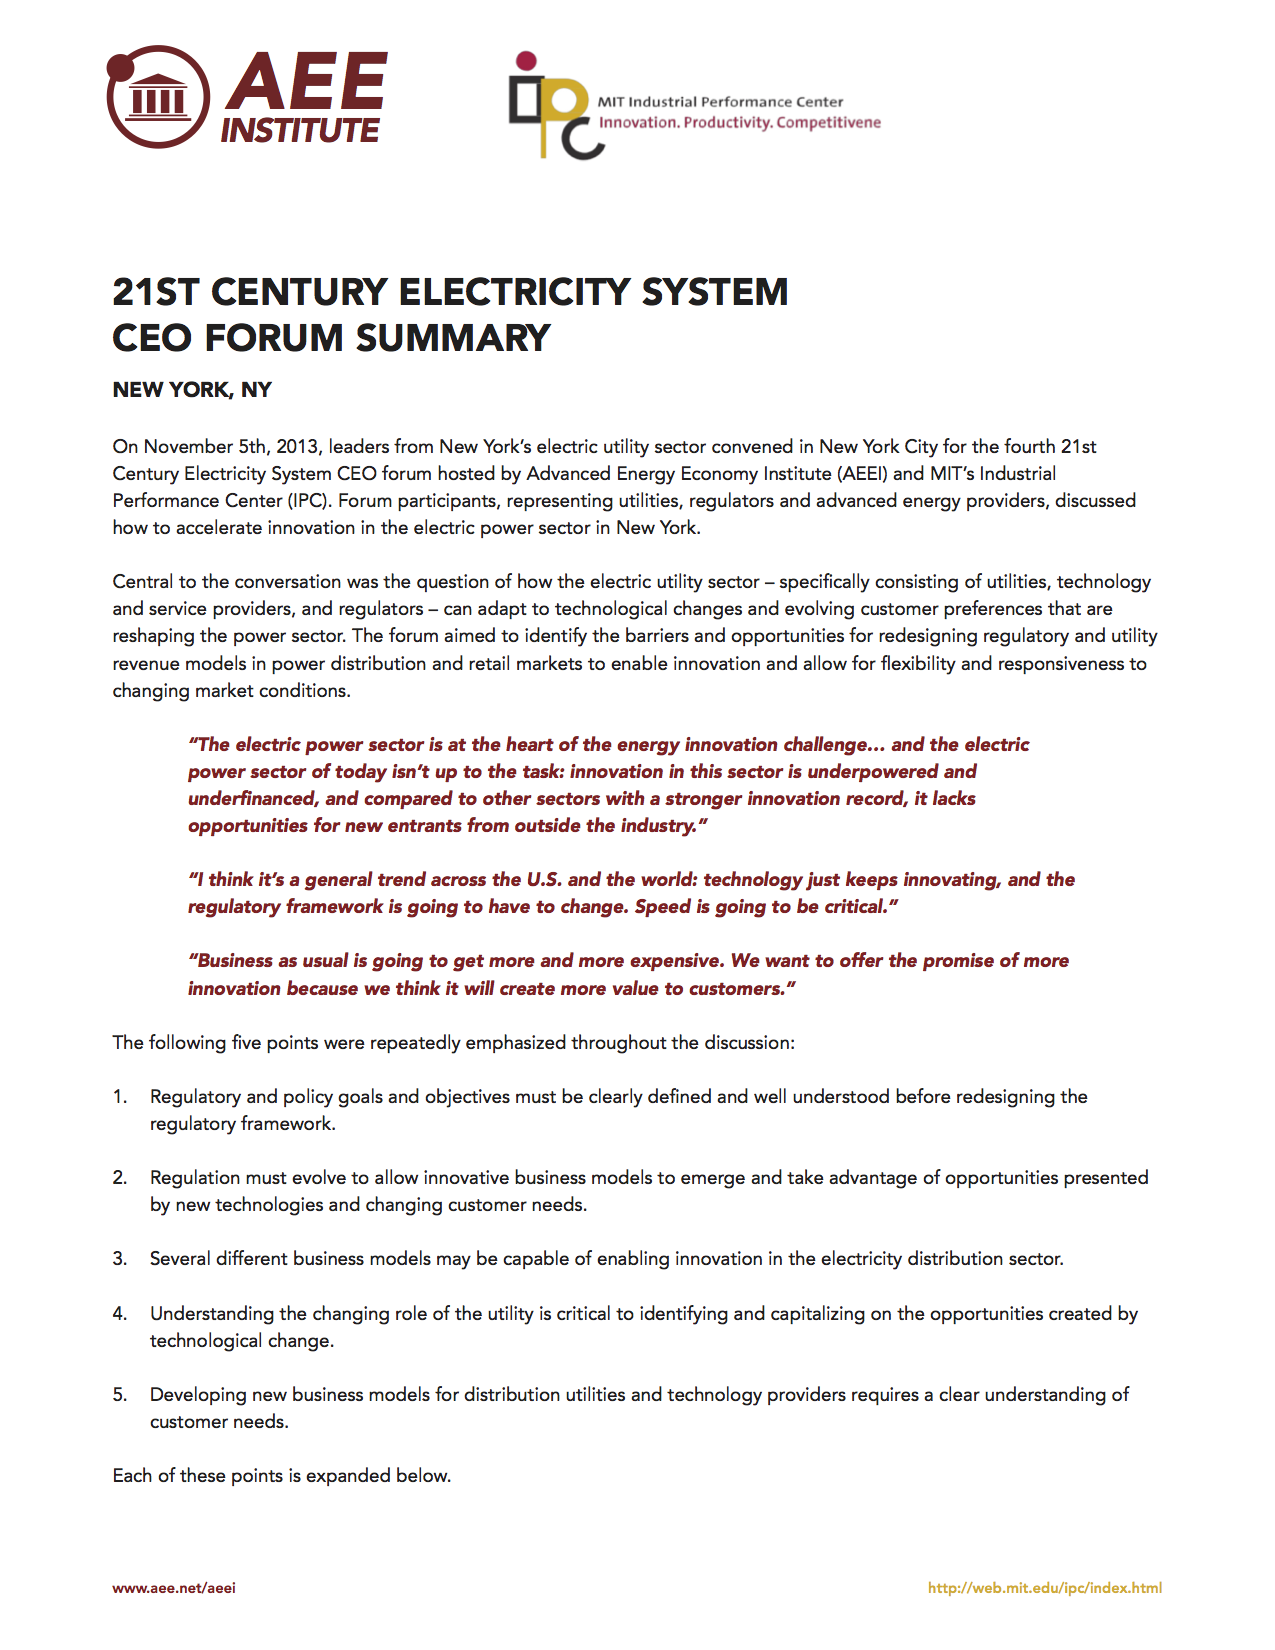 21st Century Electricity System CEO Forum - New York, NY